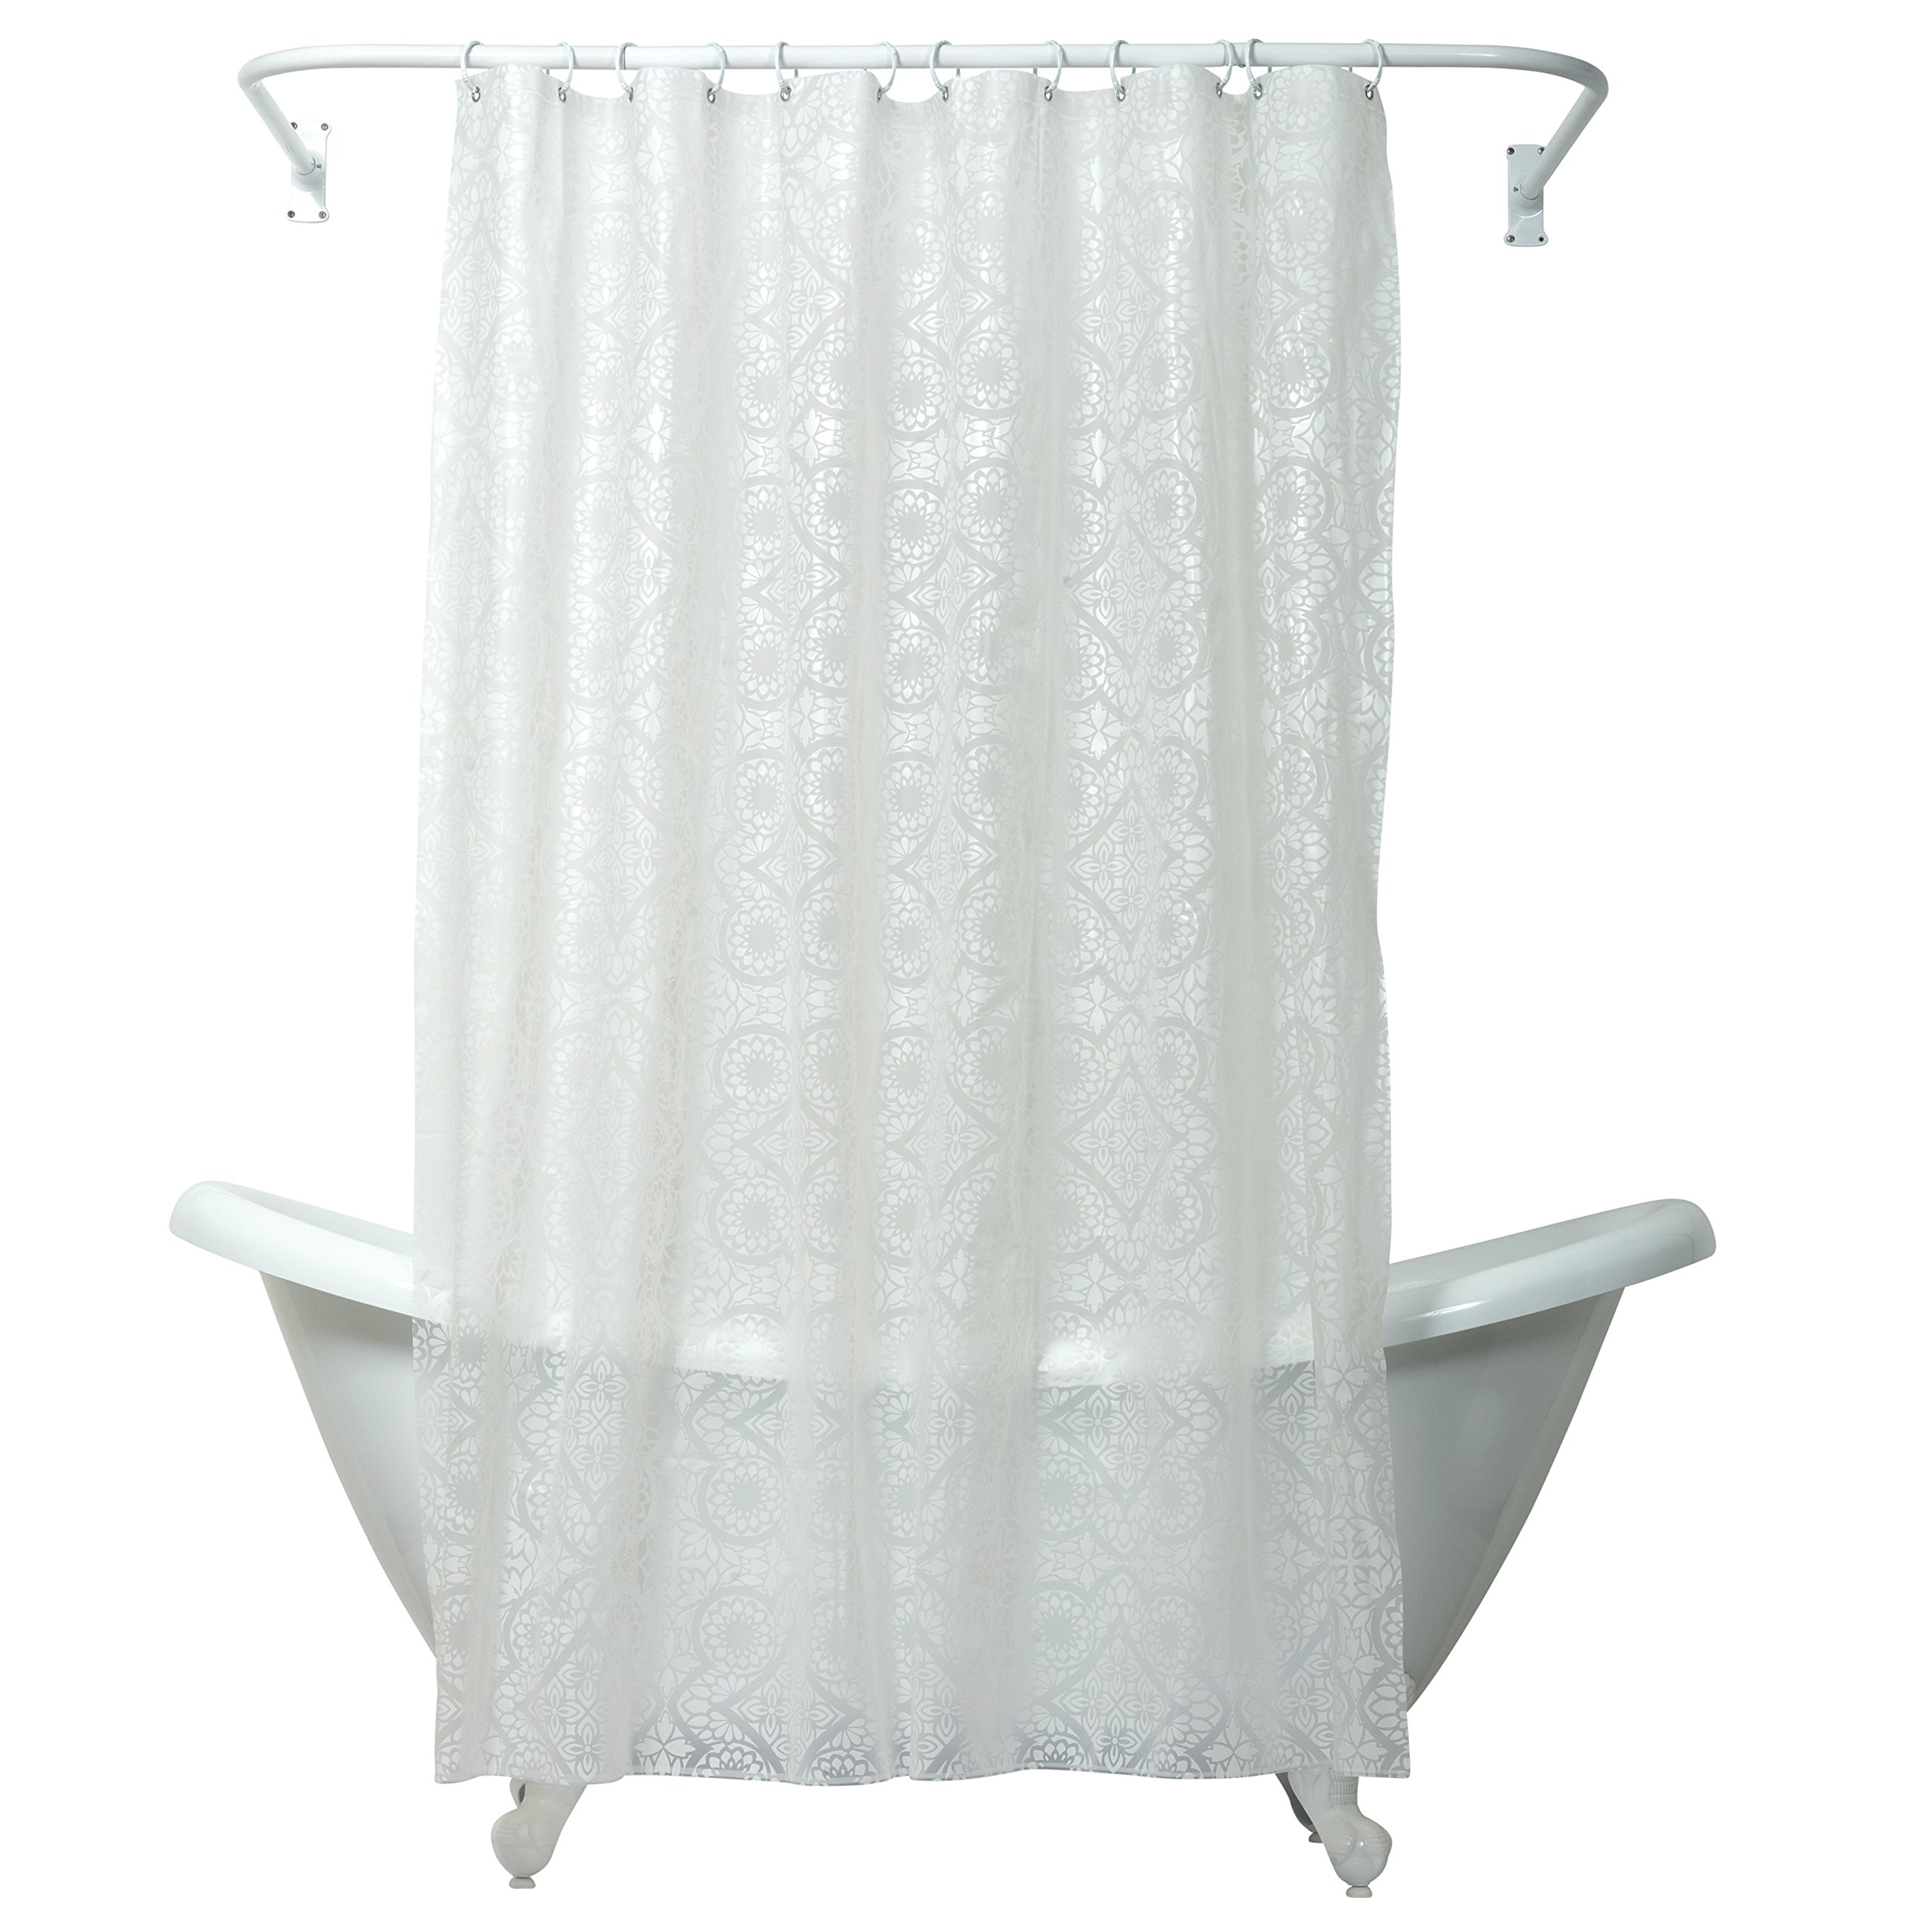 Zenna Home India Ink Morocco Peva Shower Curtain Liner, White